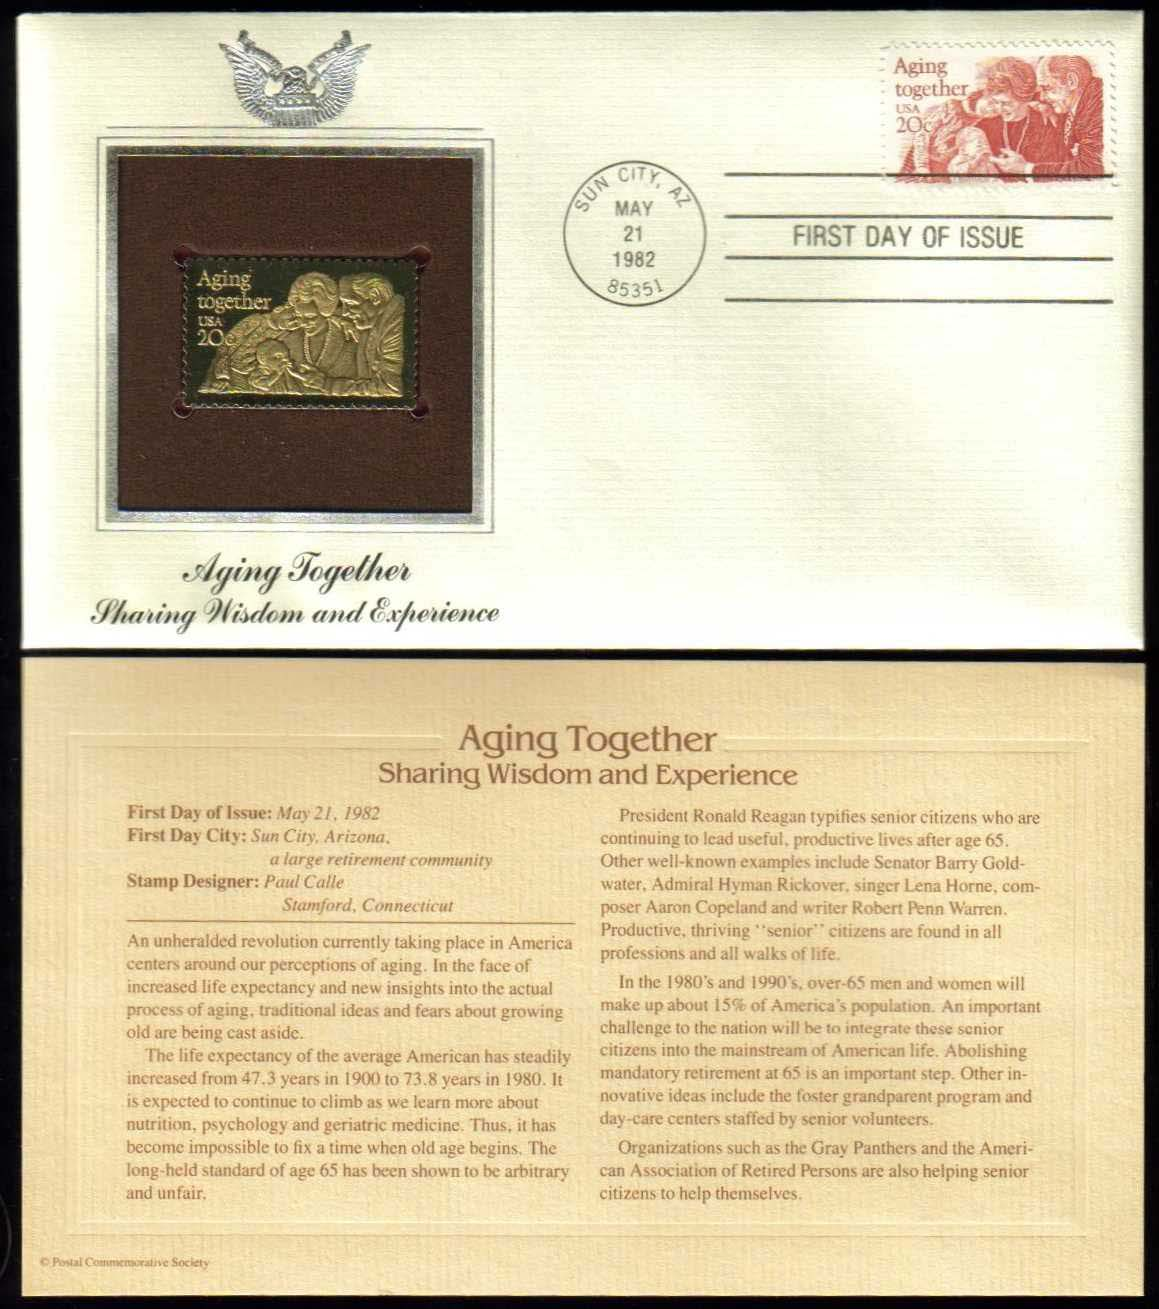 Scott 2011 Golden Replica (22Kt) unaddressed FDC <p> <a href=&quot;/images/USA-Scott-2011-Gold.jpg&quot;><font color=green><b>View the image</a></b></font>